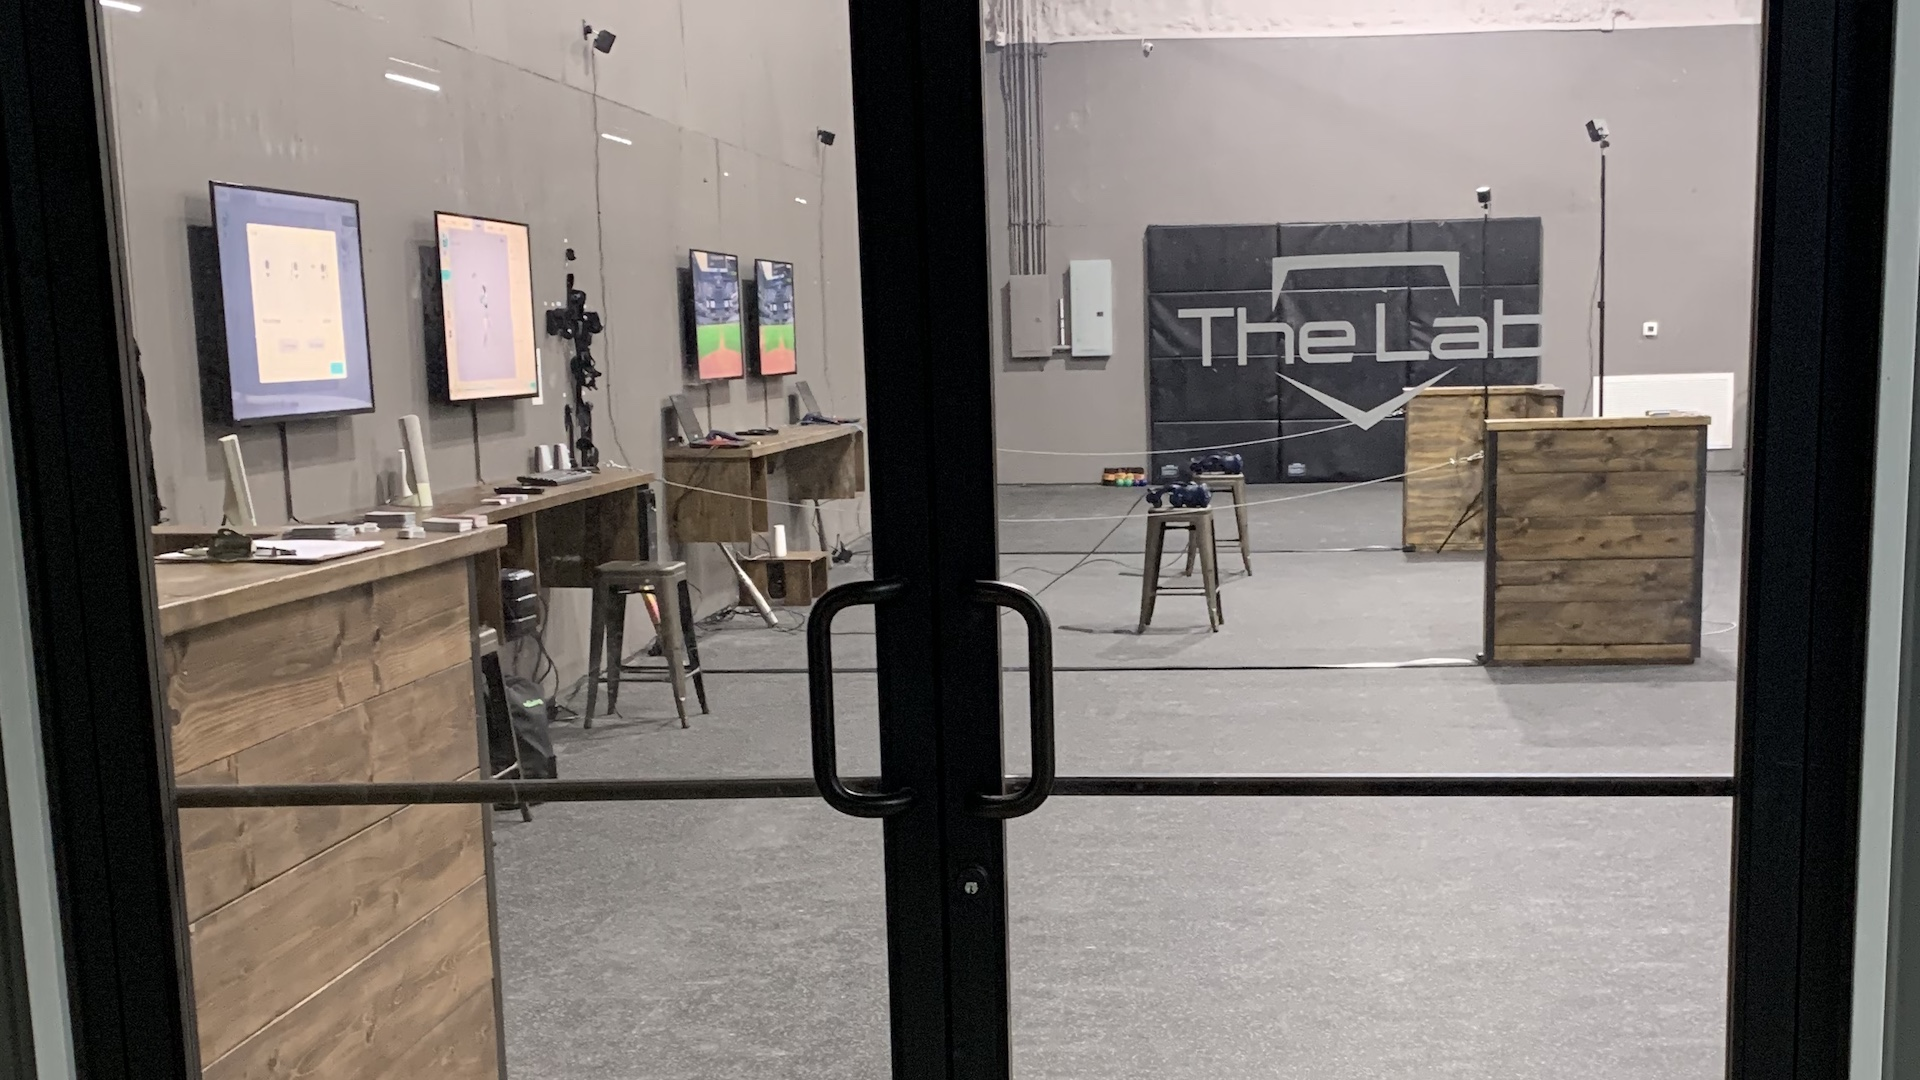 The Lab hitting facility entrance